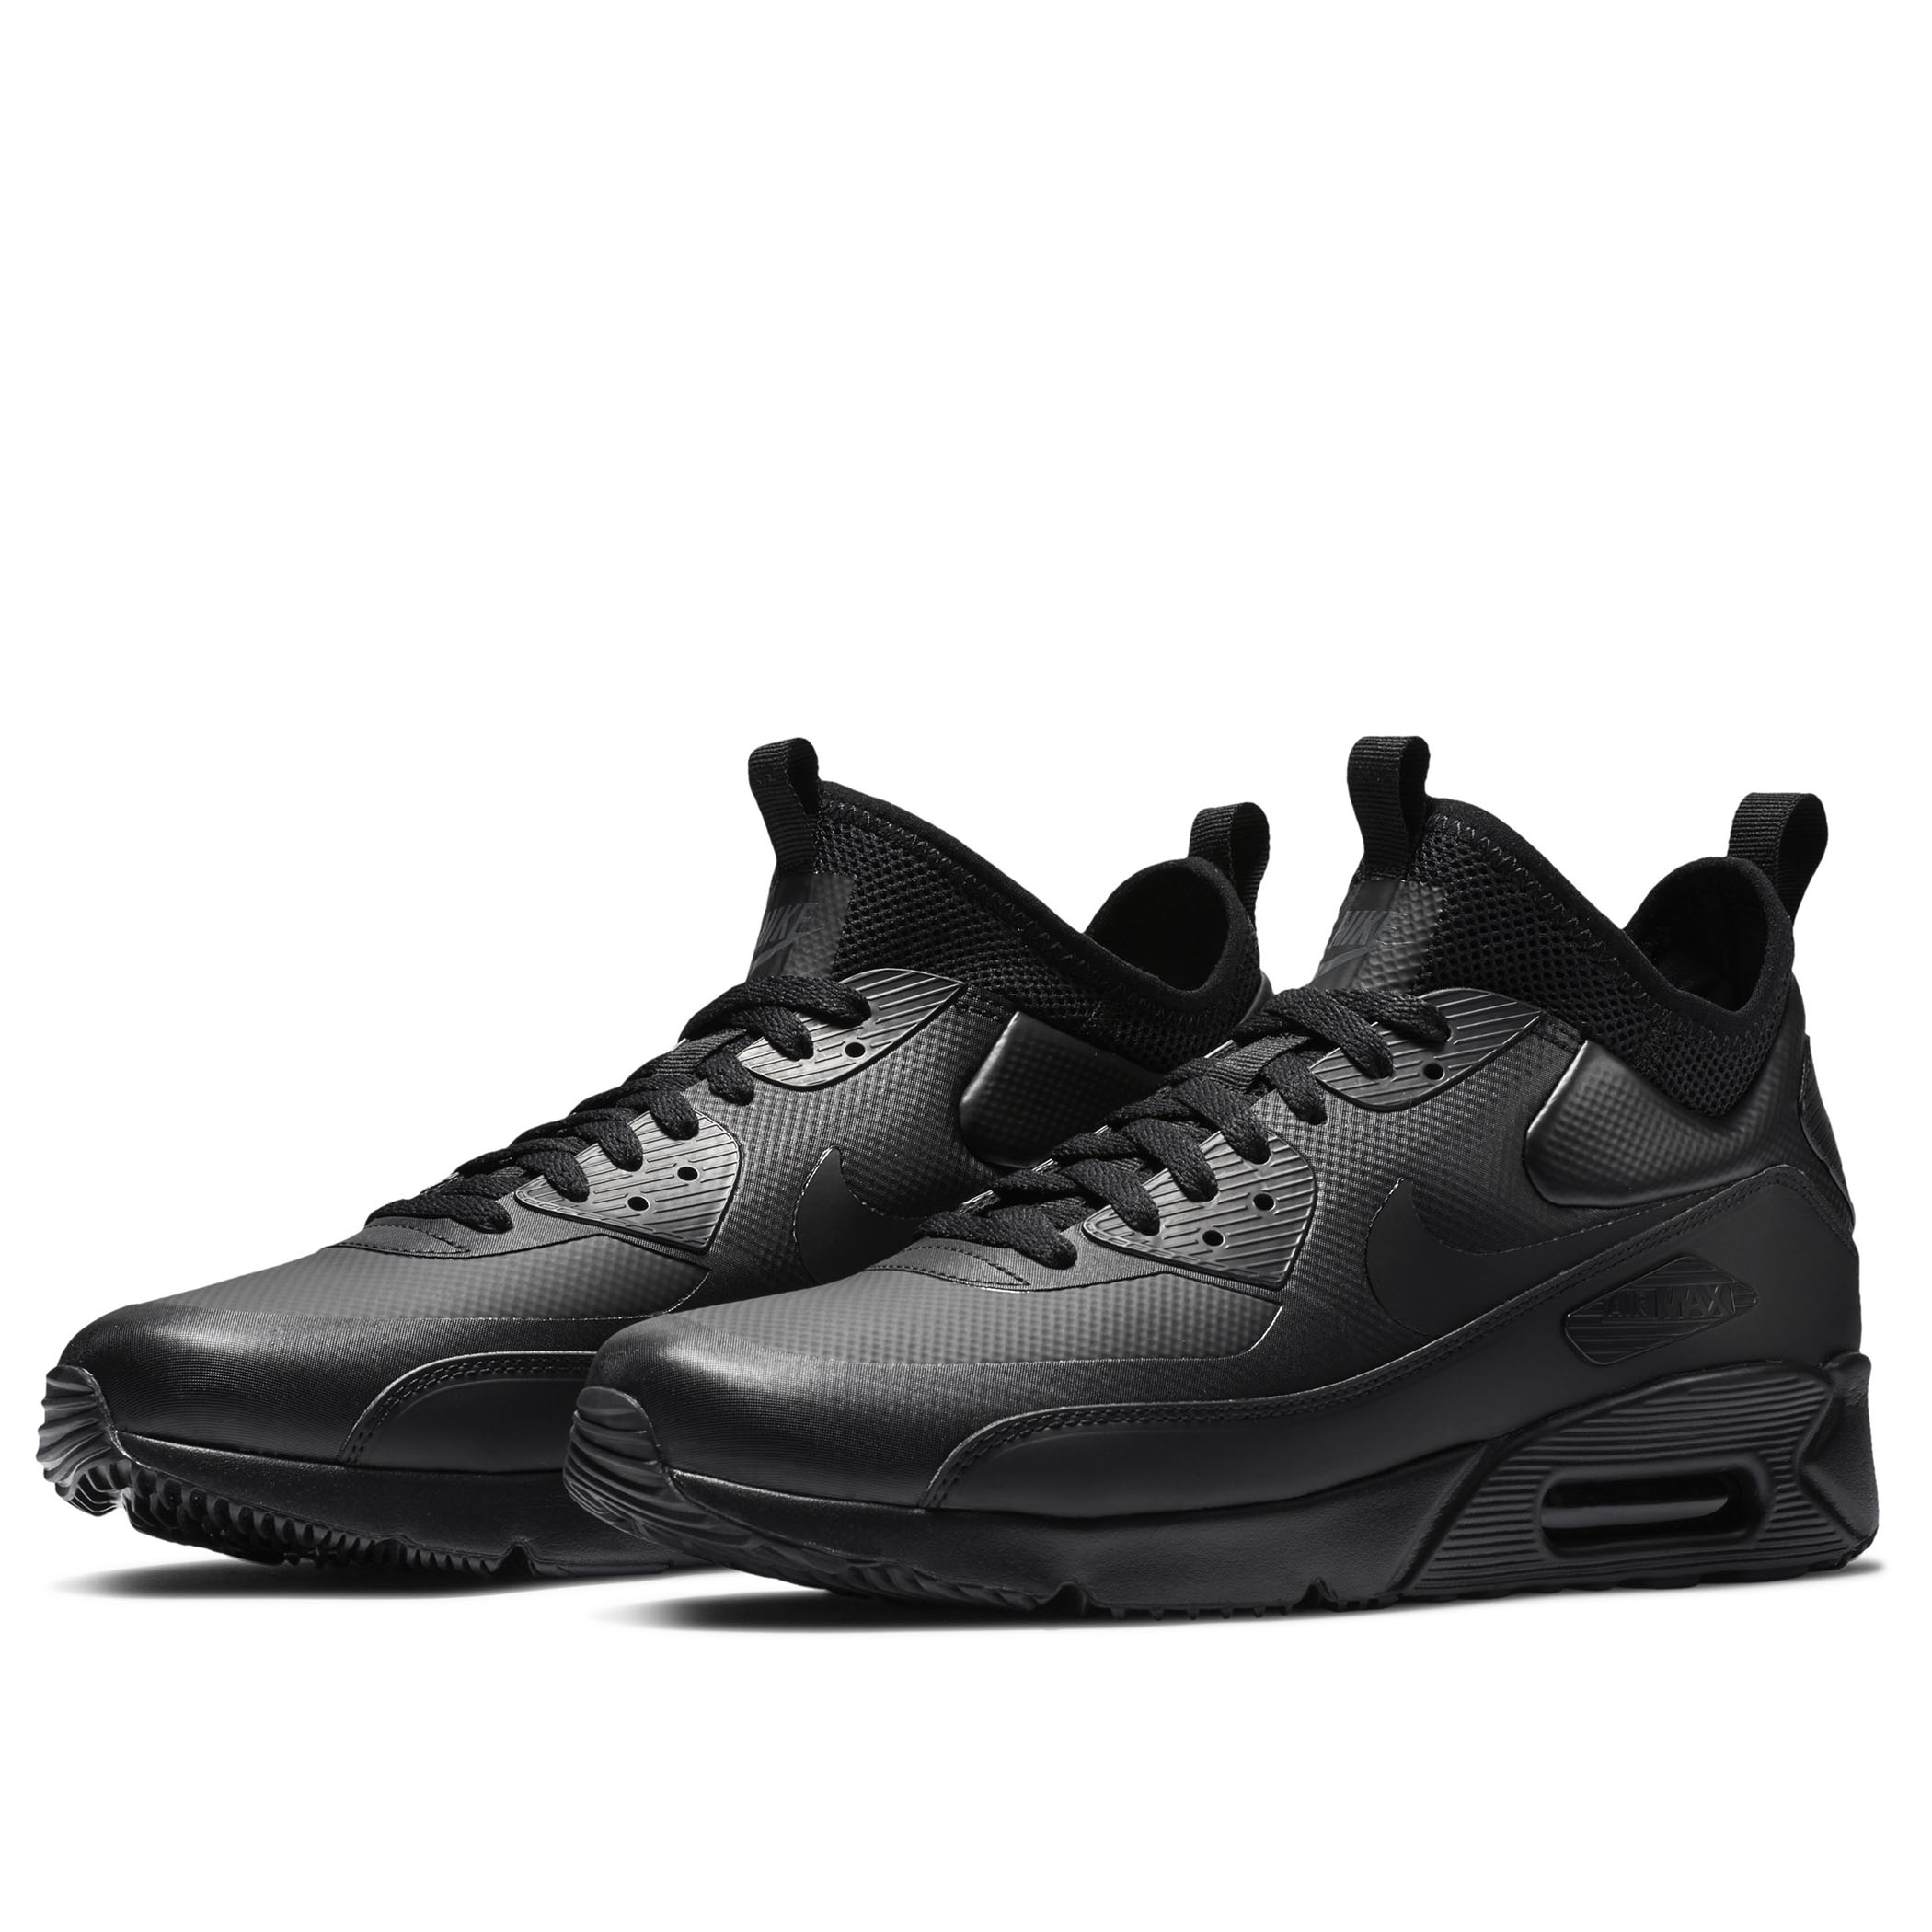 5a1f9f62 Мужские кроссовки Nike Air Max 90 Ultra Mid Winter Black/Black-Anthracite -  фото